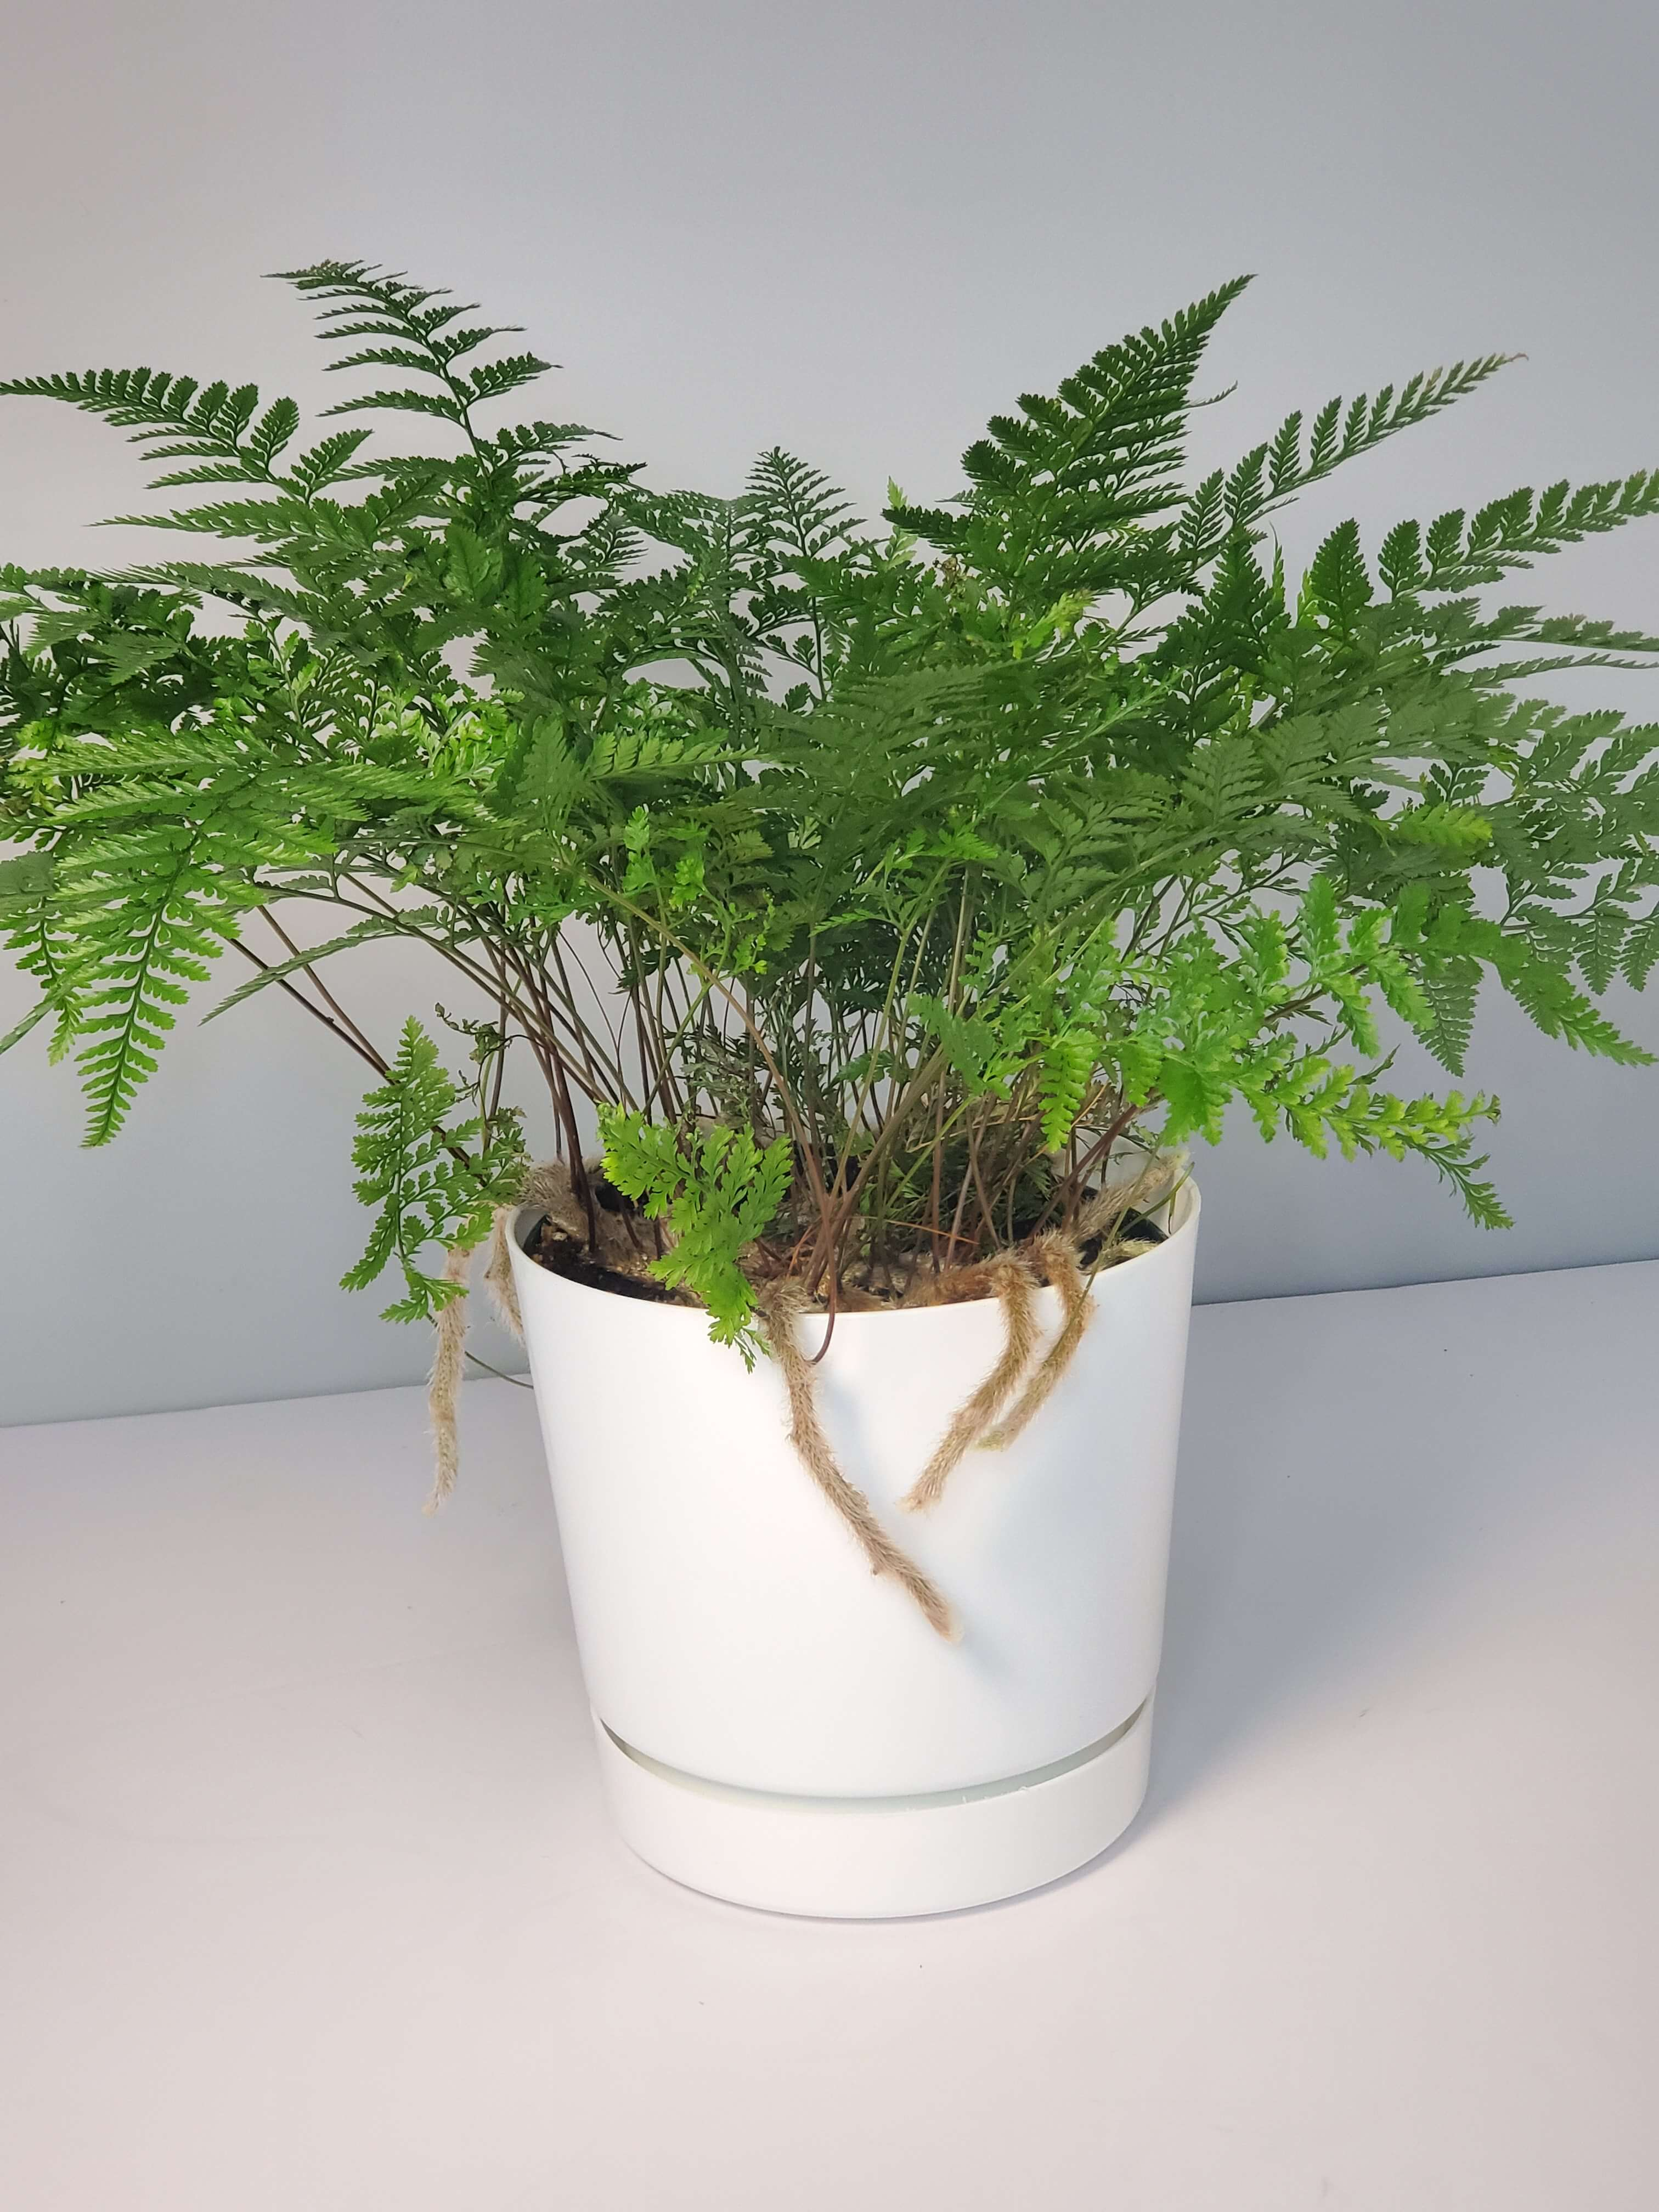 Rabbit's Foot Fern Houseplant buy online